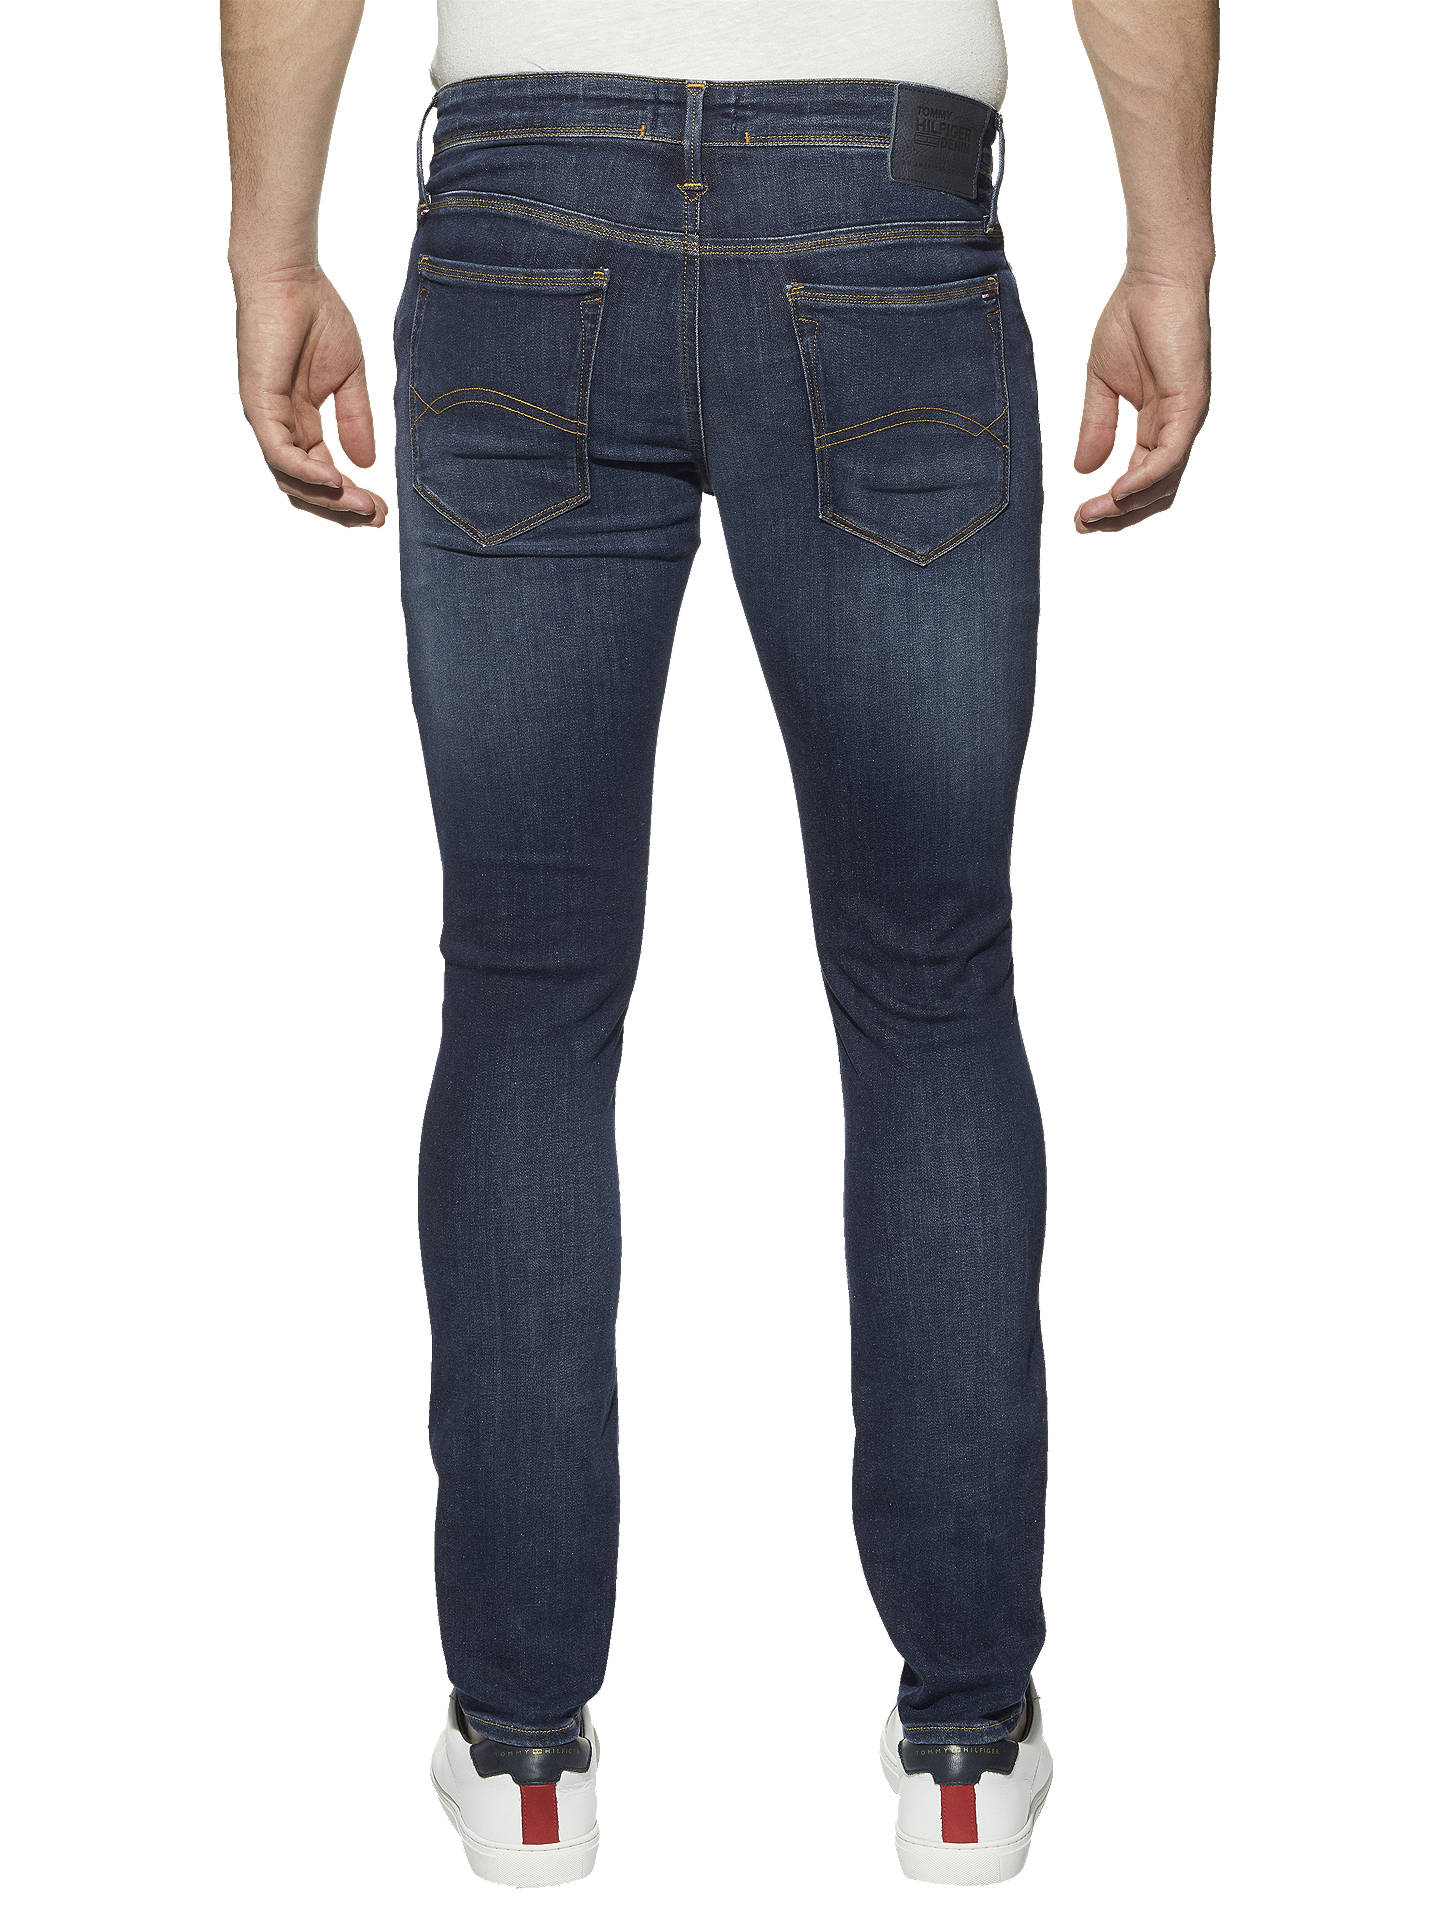 21ffbbc2 ... Buy Tommy Jeans Skinny Simon Jeans, Dark Blue, 34R Online at  johnlewis.com ...